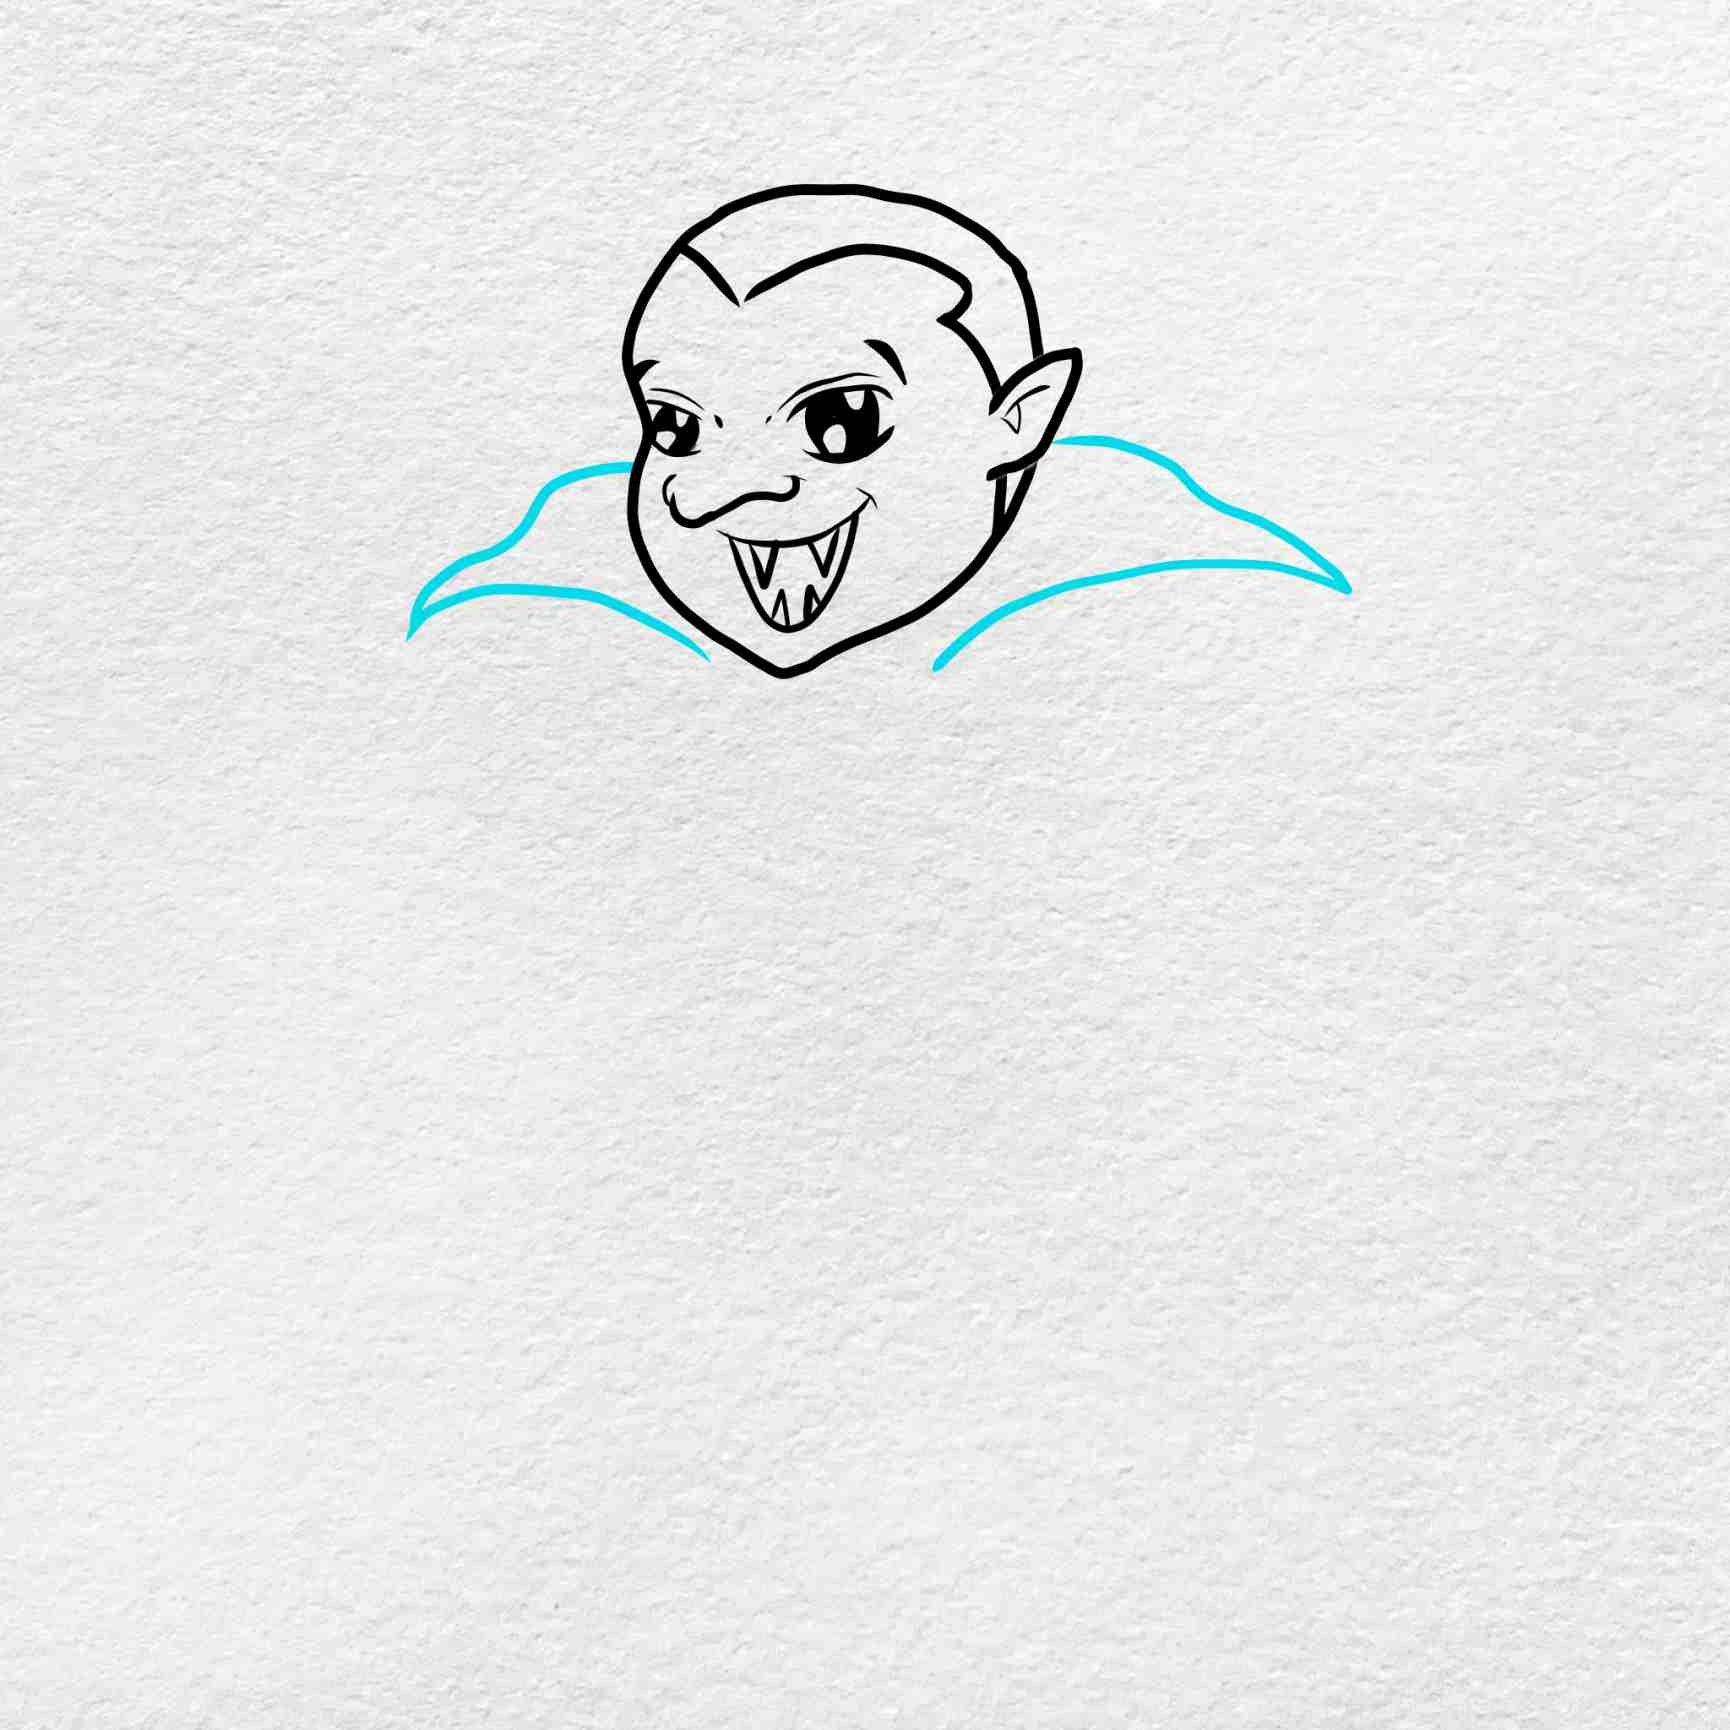 Vampire Drawing For Kids: Step 4